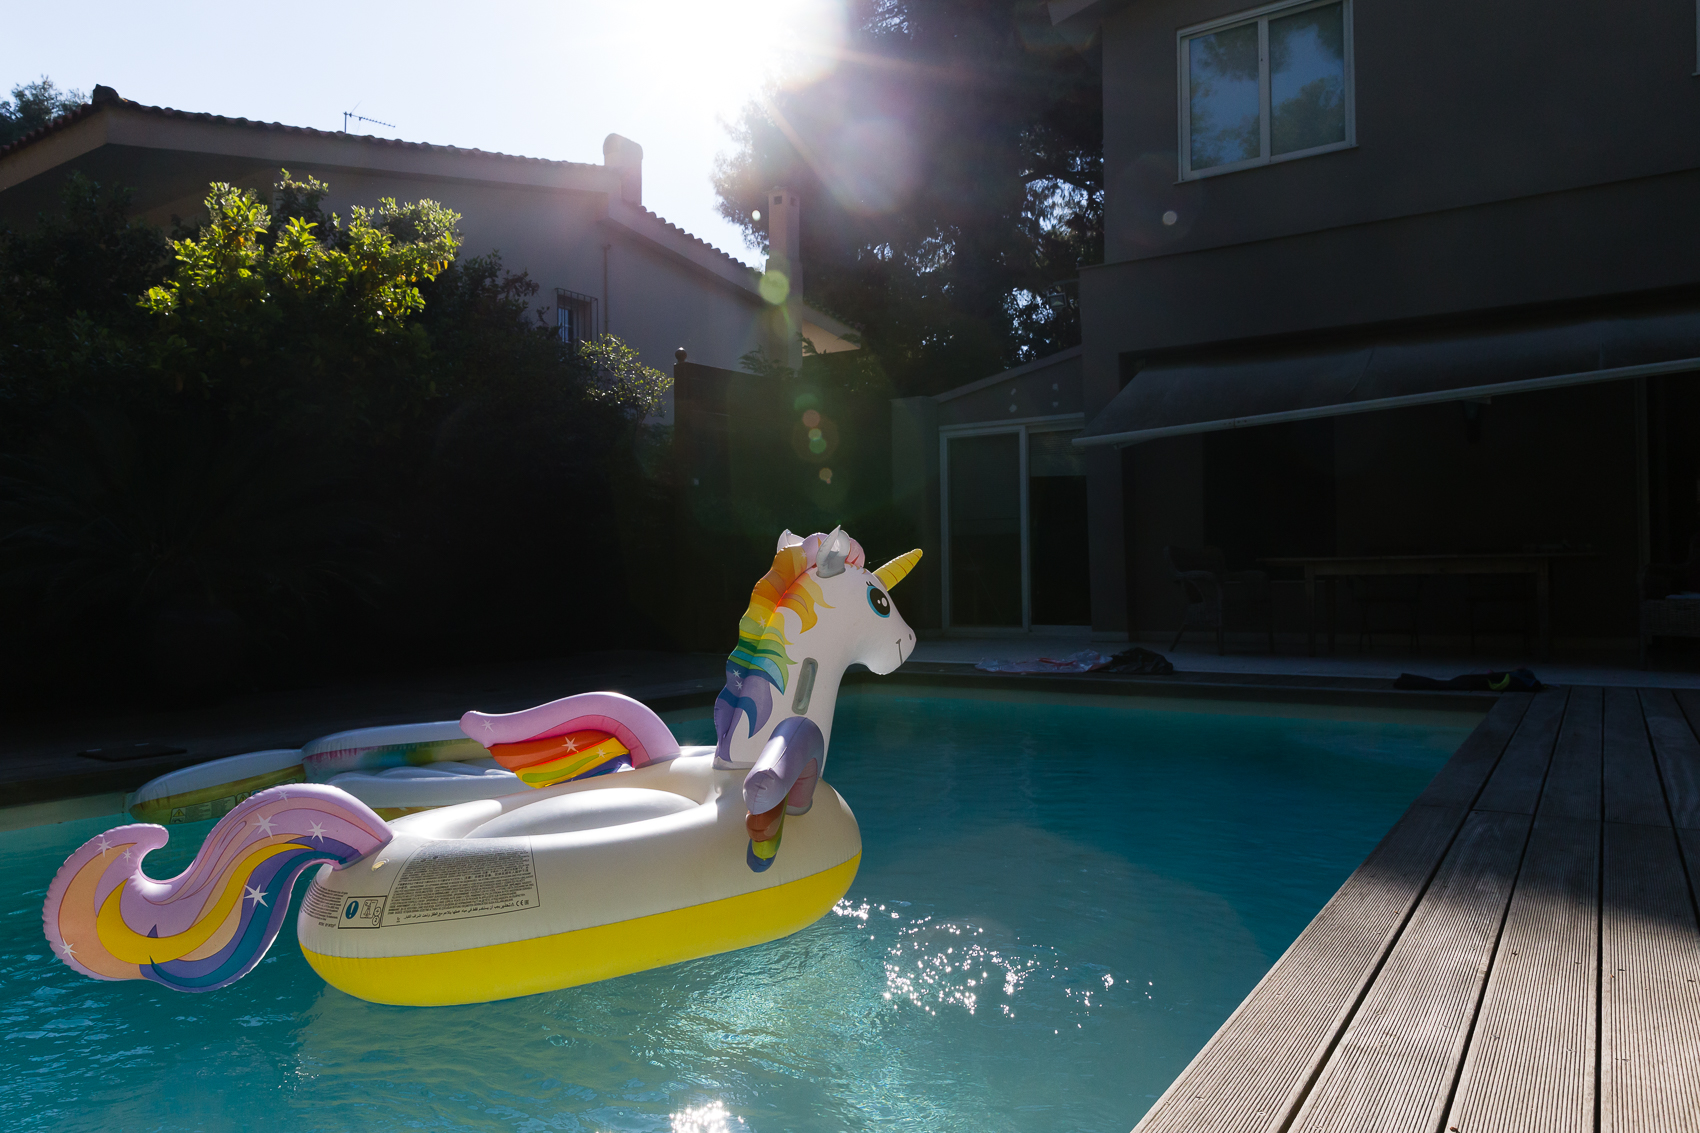 unicorn in a pool